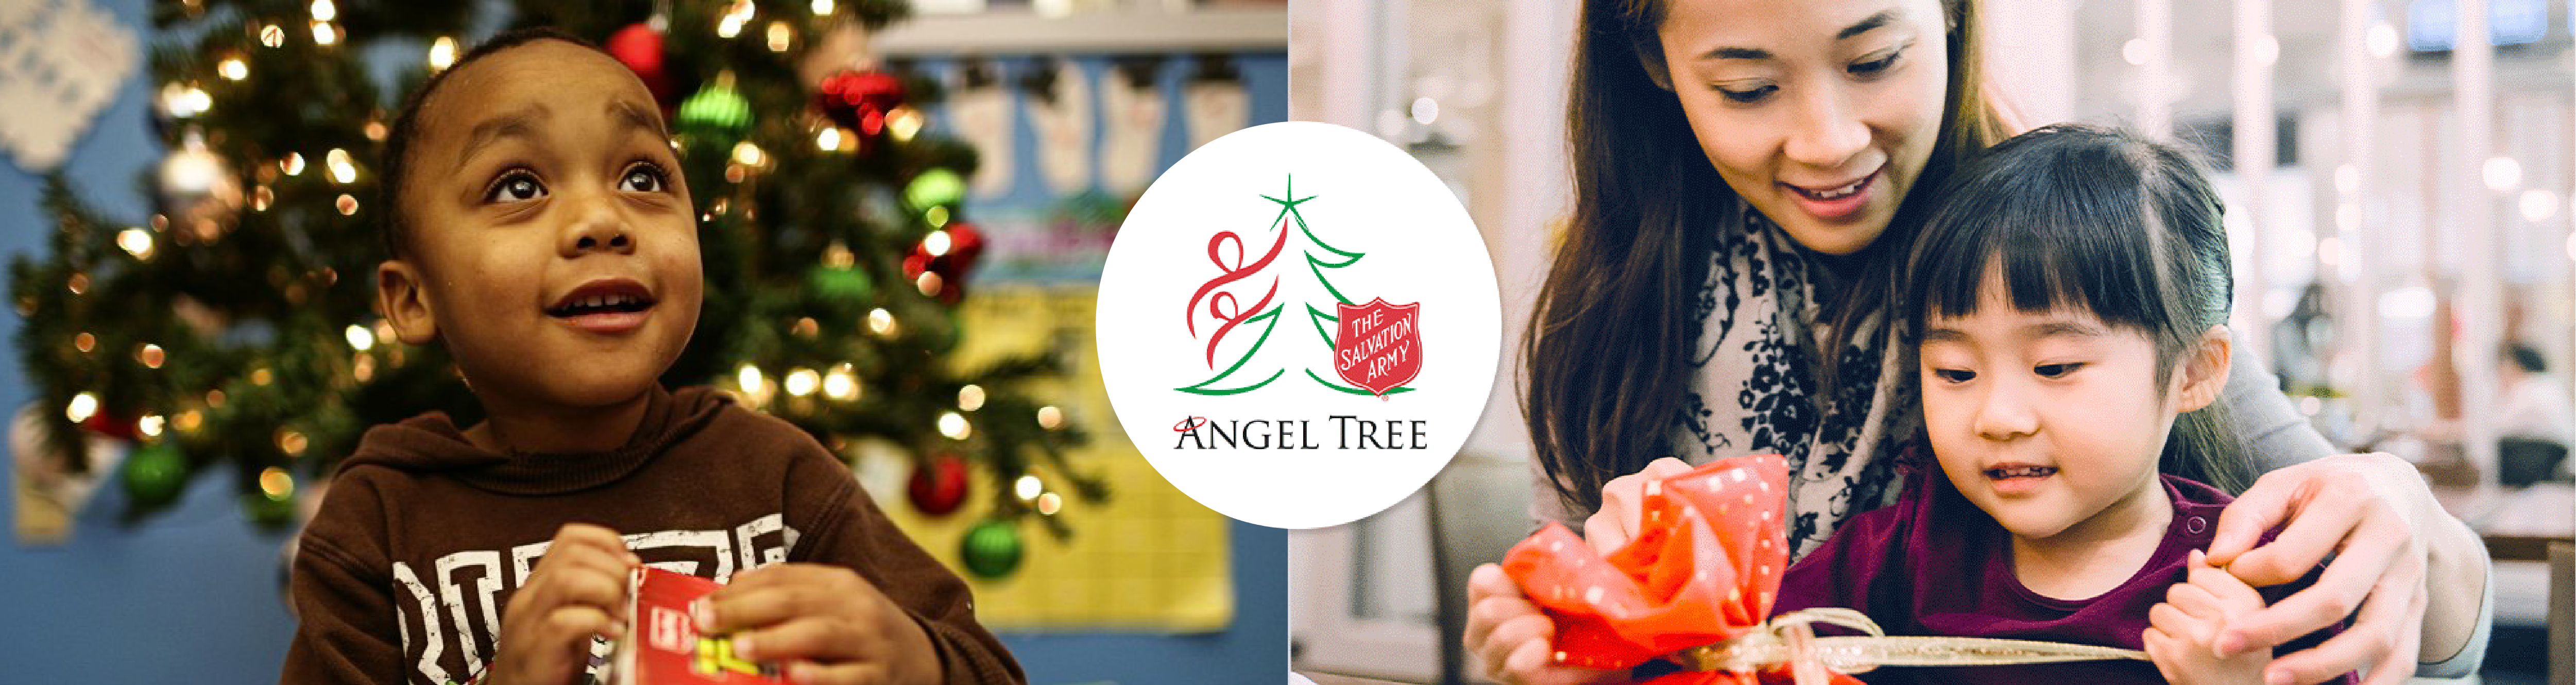 Angel Tree Link